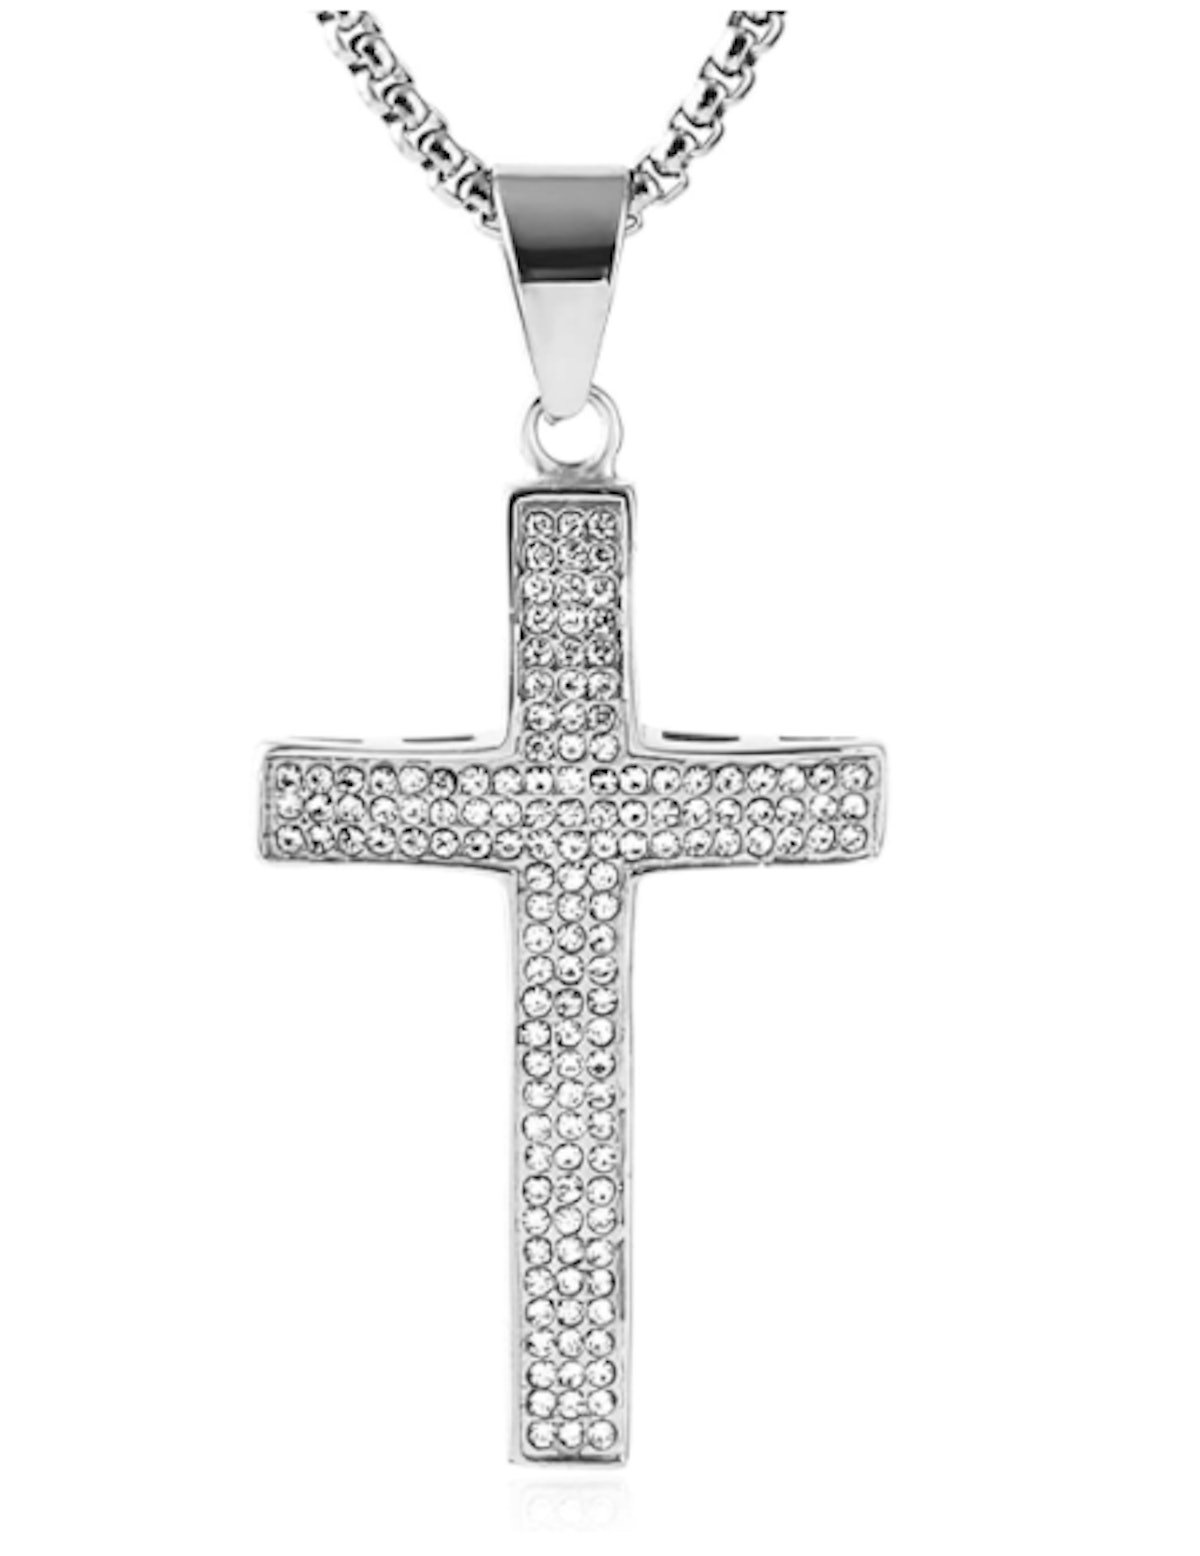 Hzman Iced Out Cross Necklace